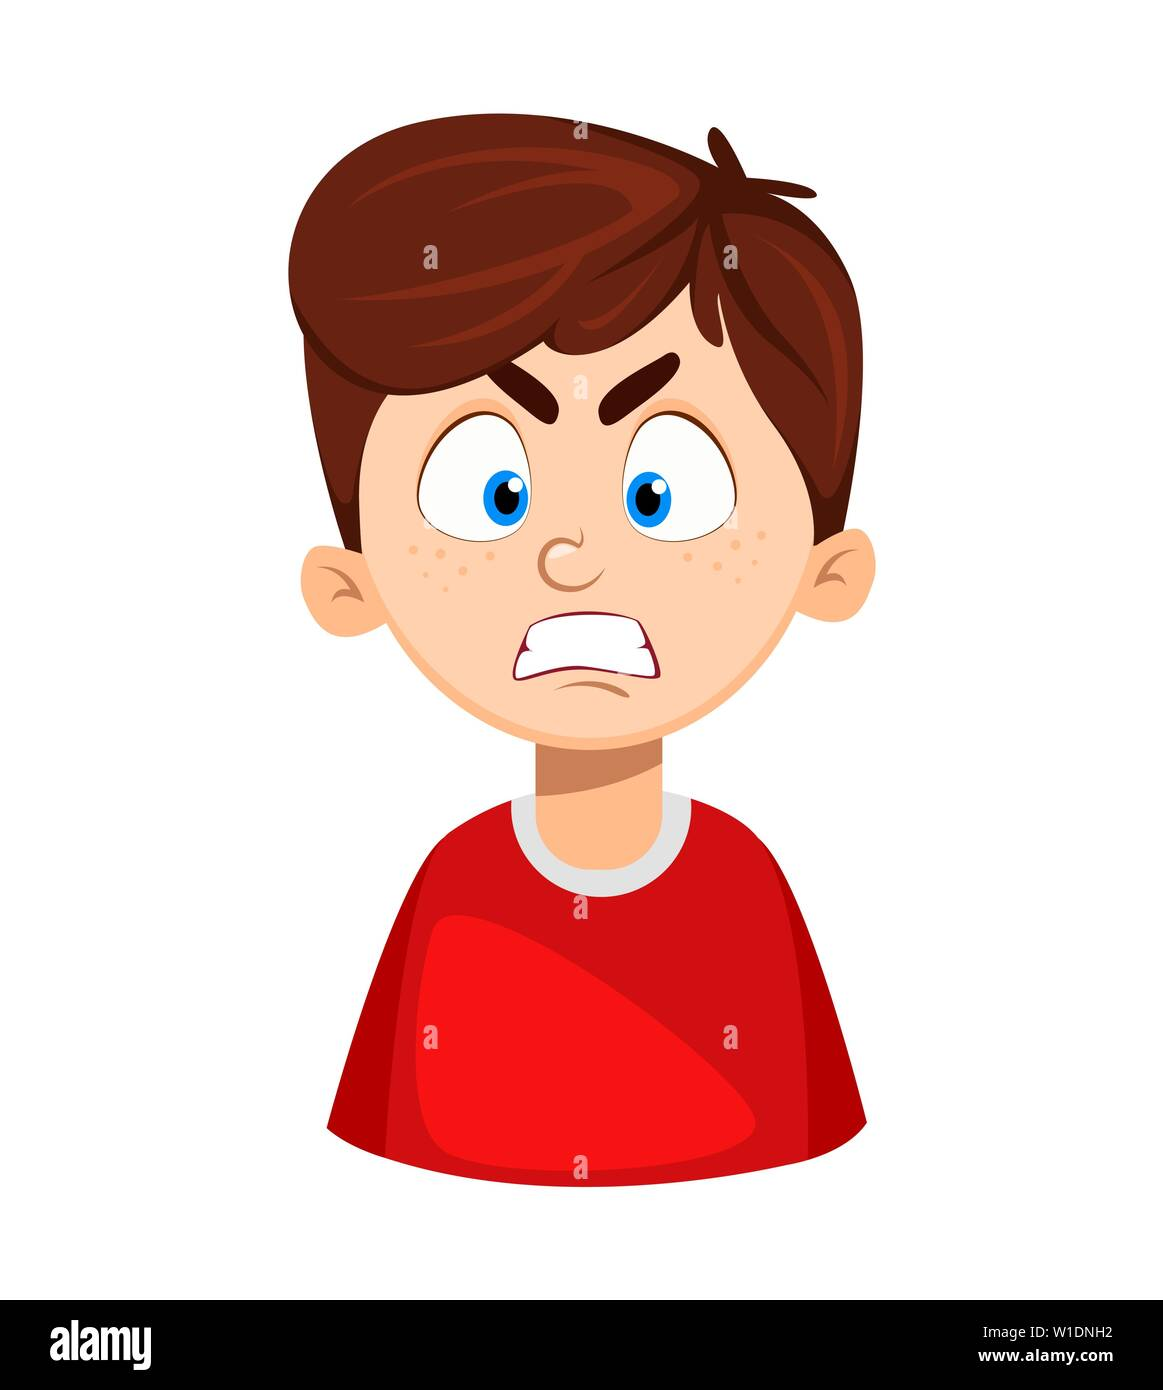 Face Expression Of Cute Boy Angry Emotion Of A Child Vector Illustration On White Background Stock Vector Image Art Alamy